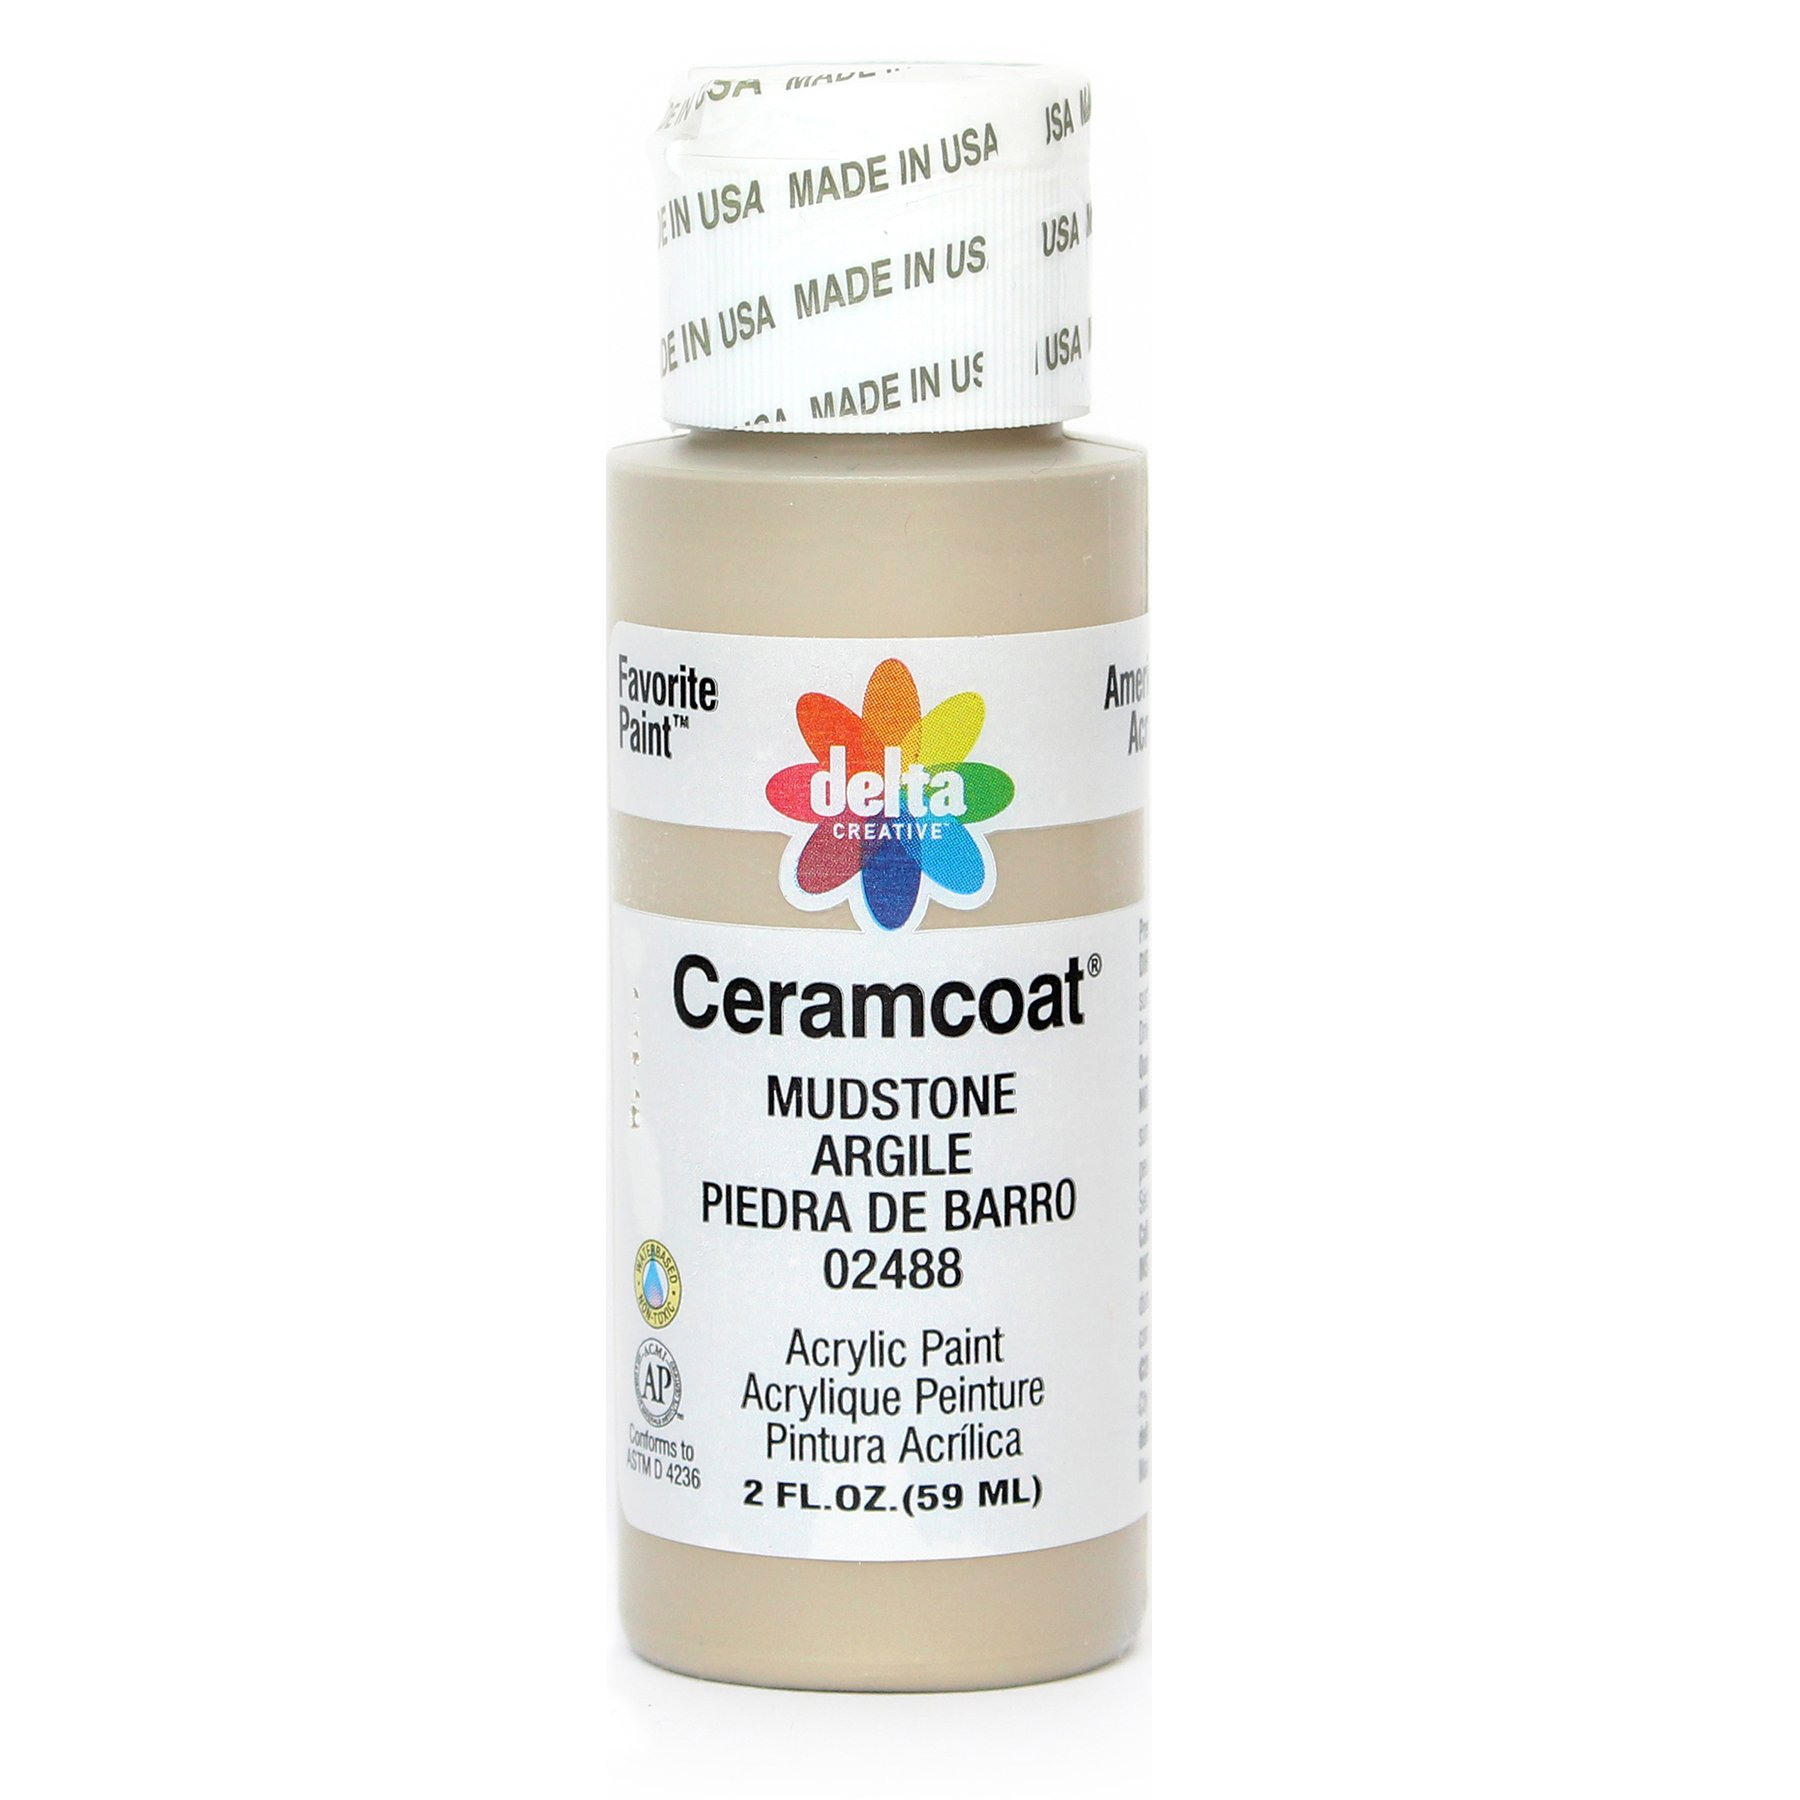 Delta Creative Ceramcoat Acrylic Paint in Assorted Colors (2 oz), 2488, Mudstone